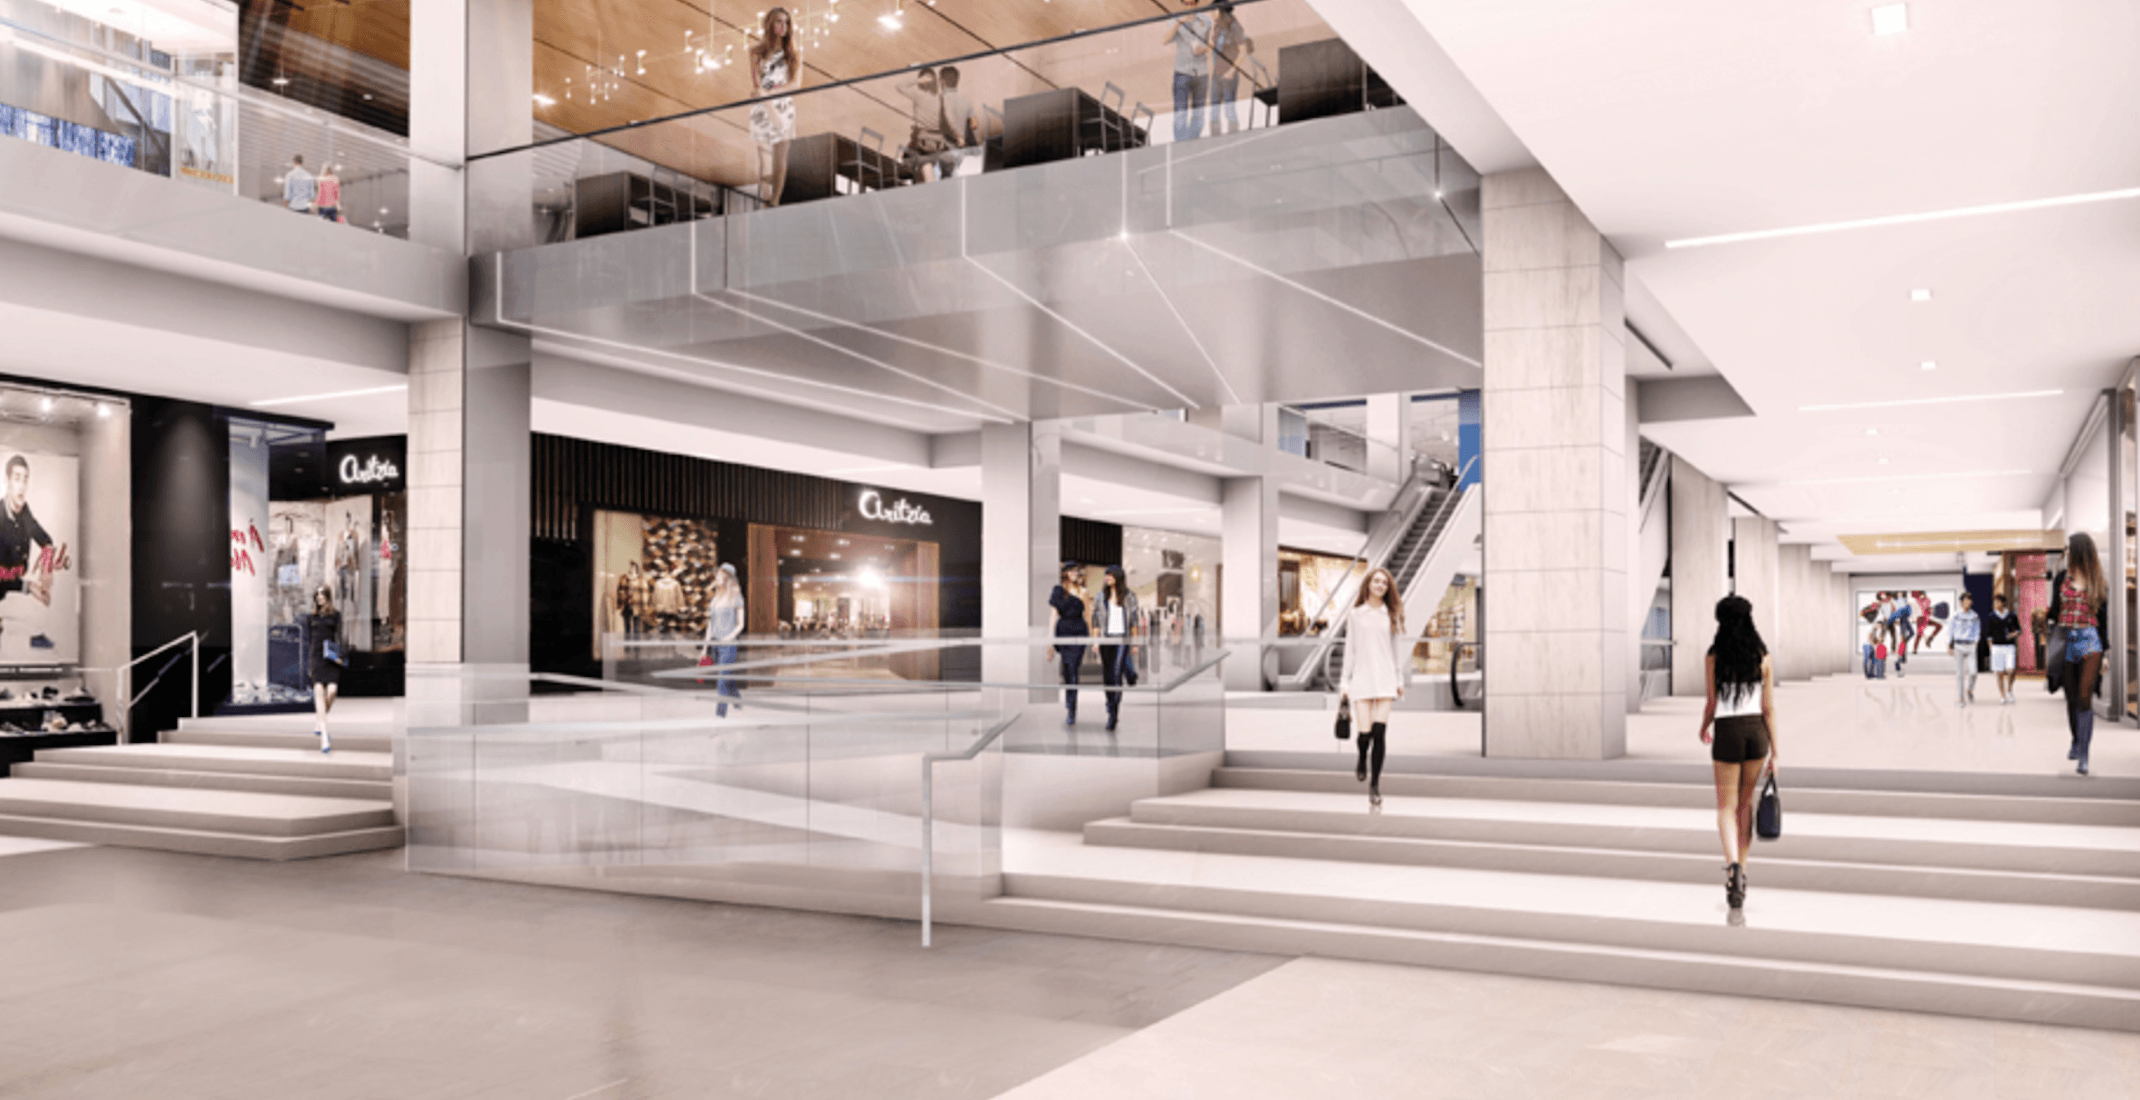 Here's what Montreal's new Eaton Centre will look like (RENDERINGS)